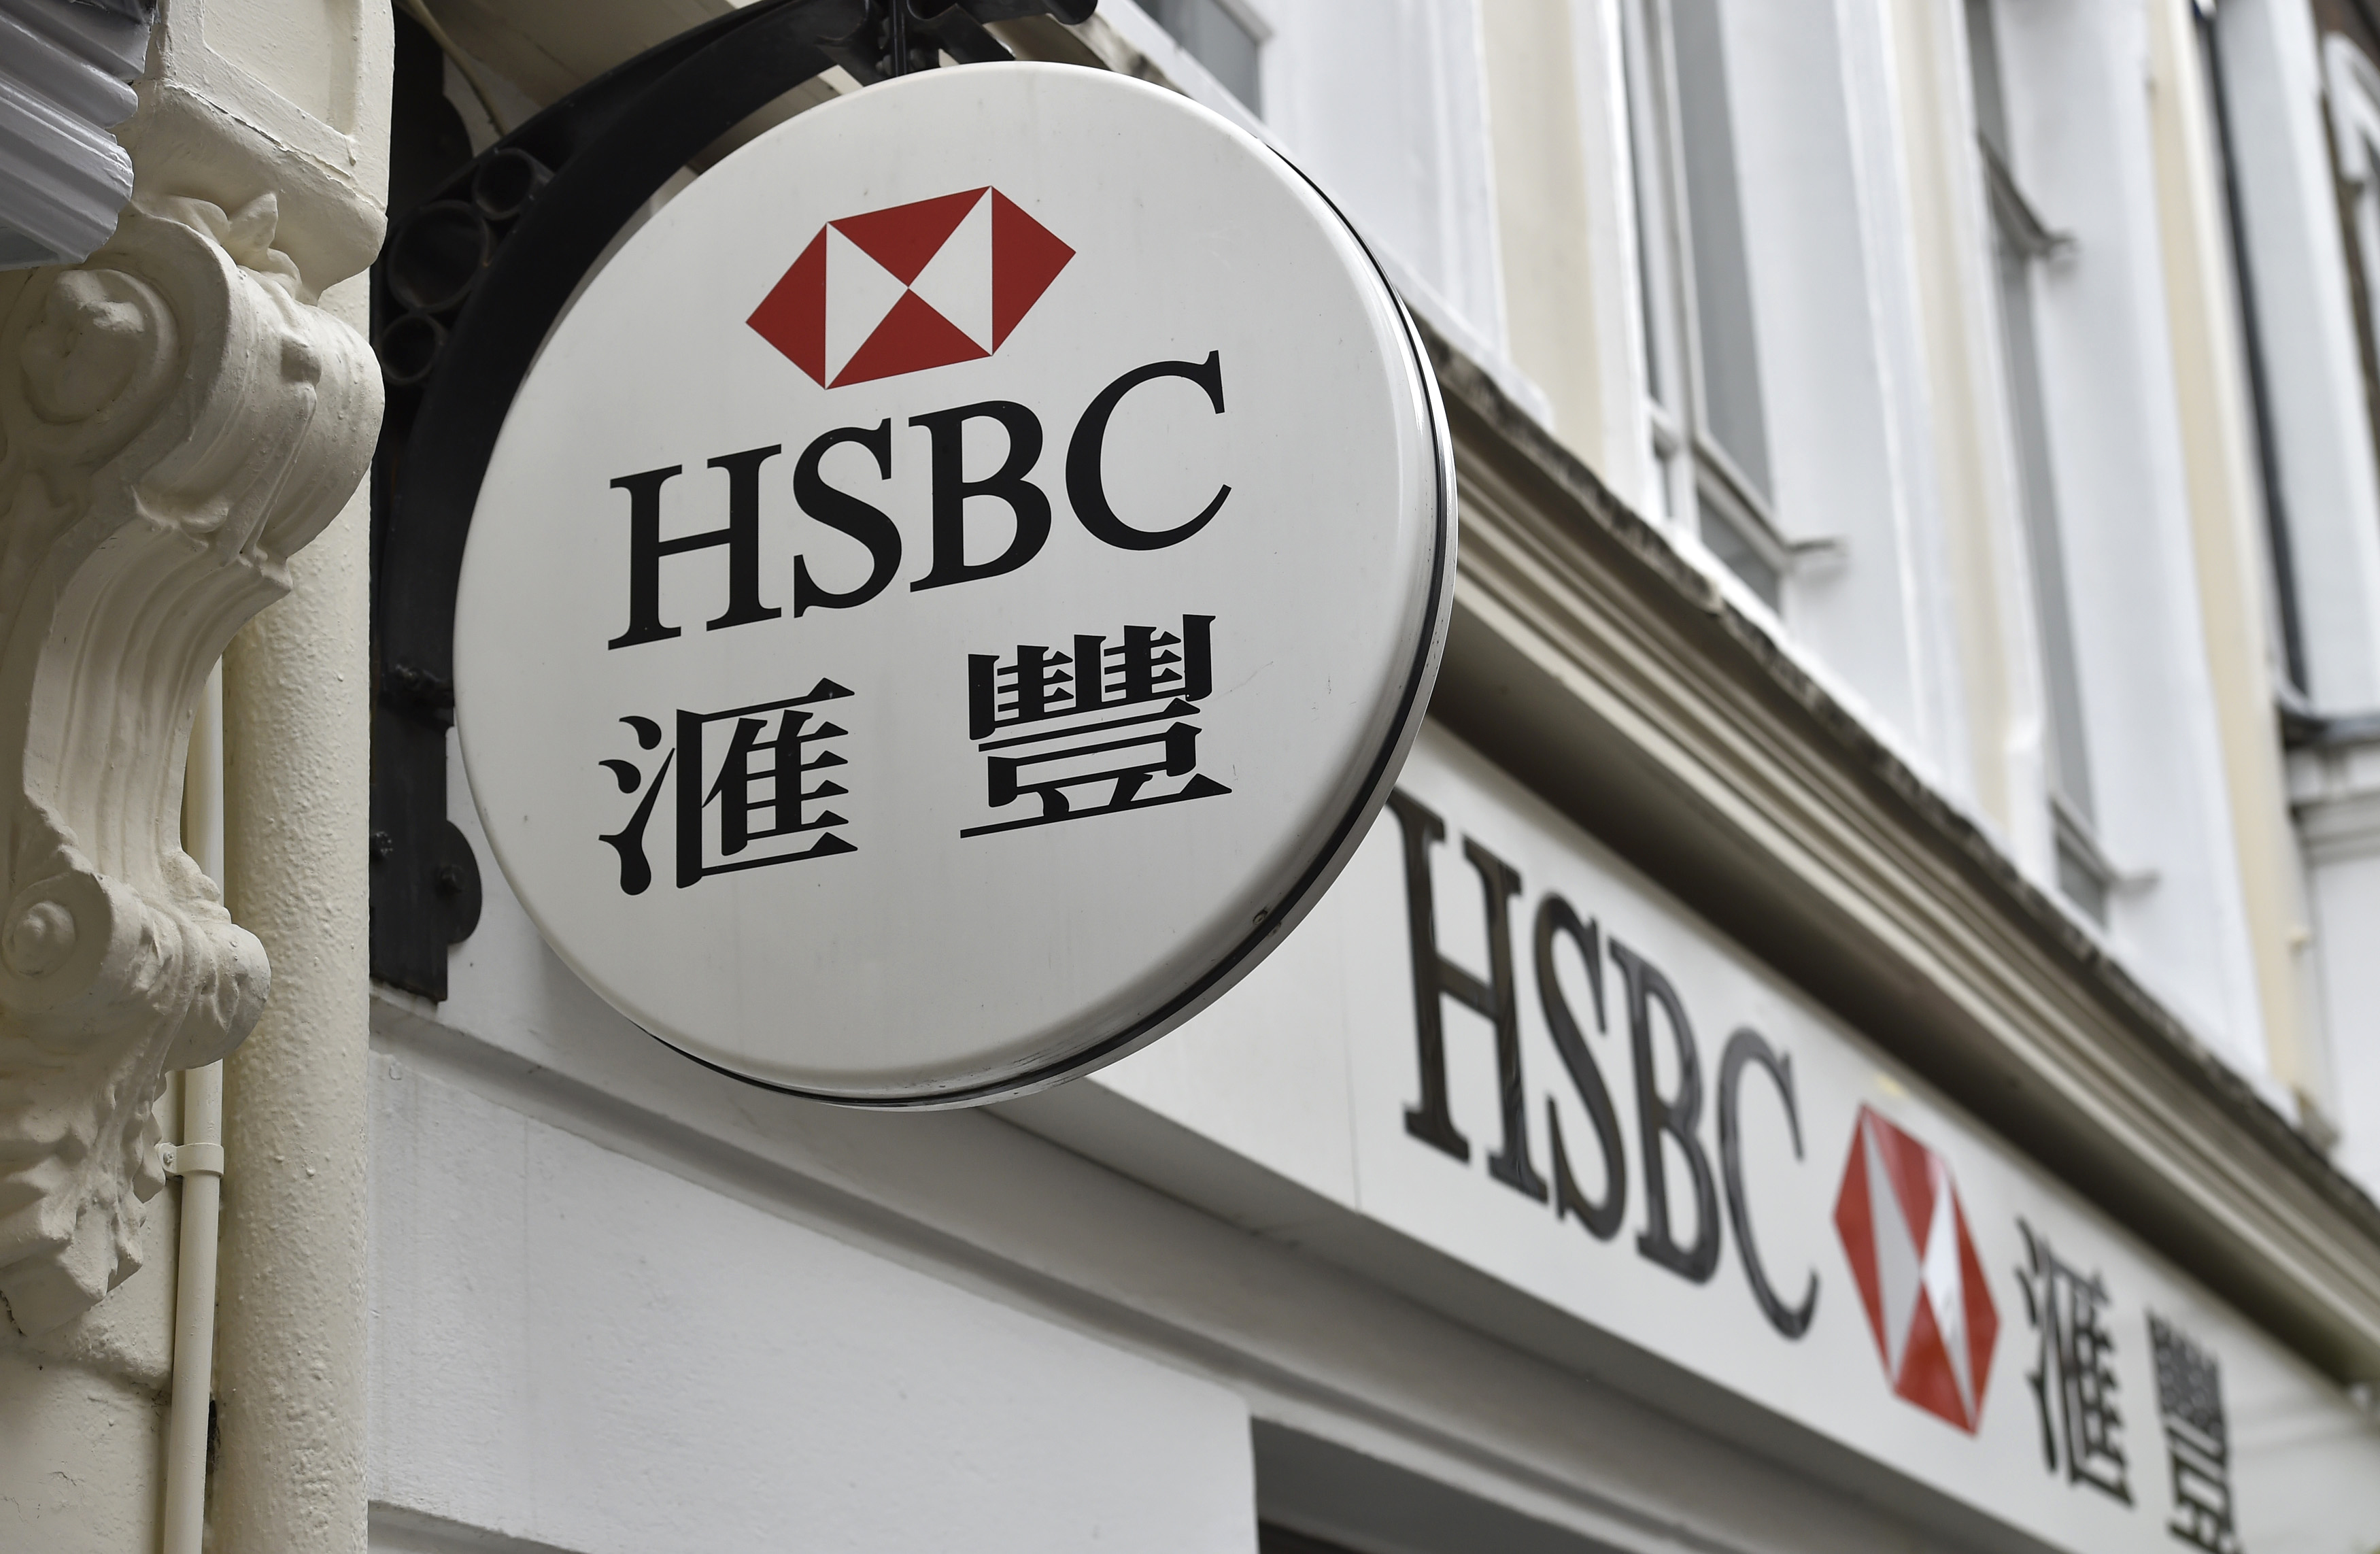 A branch of HSBC is seen in Chinatown in central London June 9, 2015